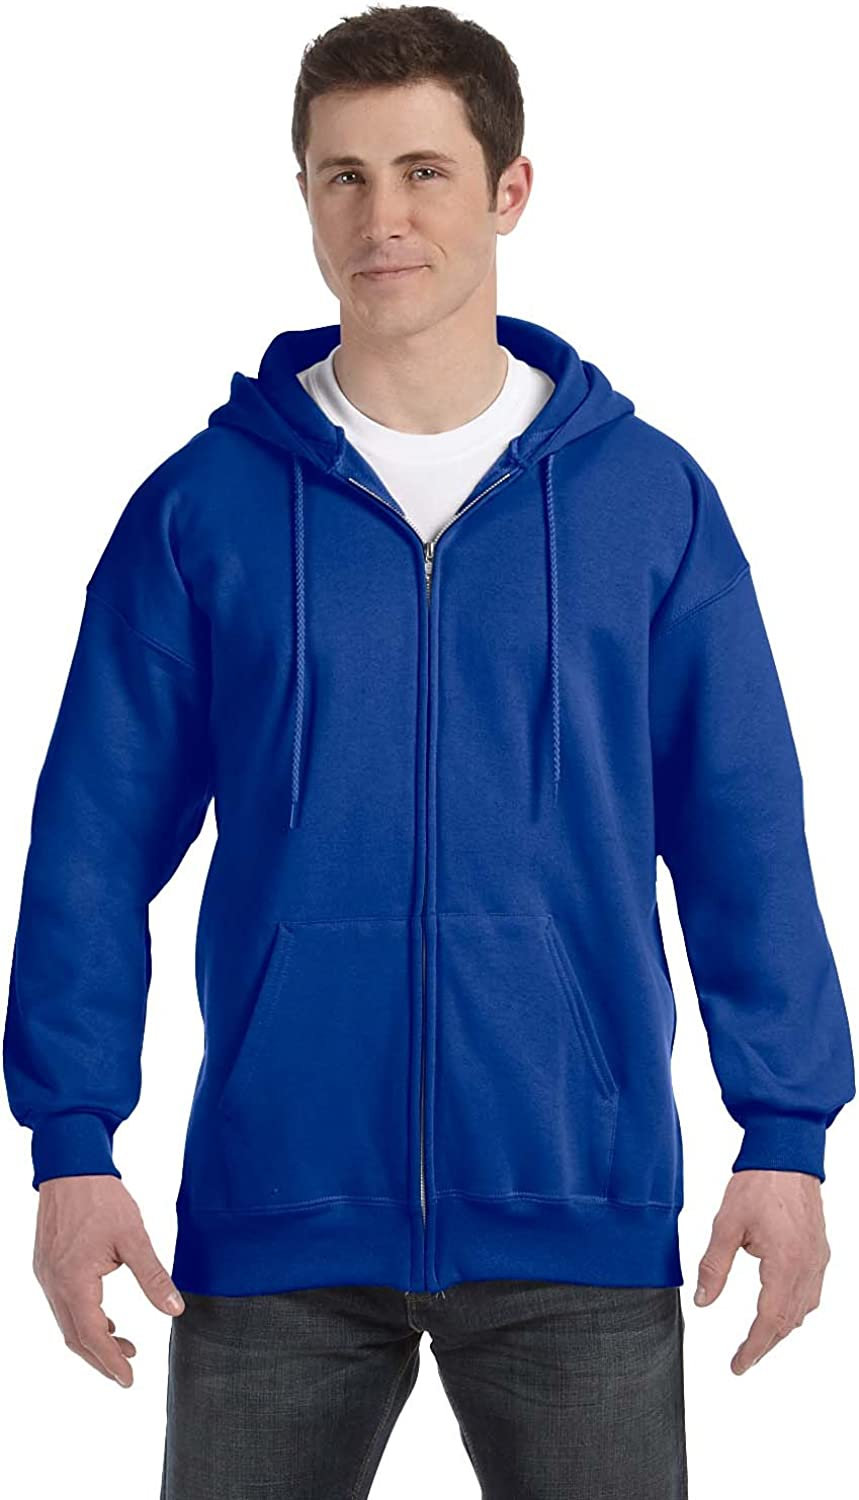 Hanes Ultimate Cotton Adult Fleece Full-Zip Hoodie